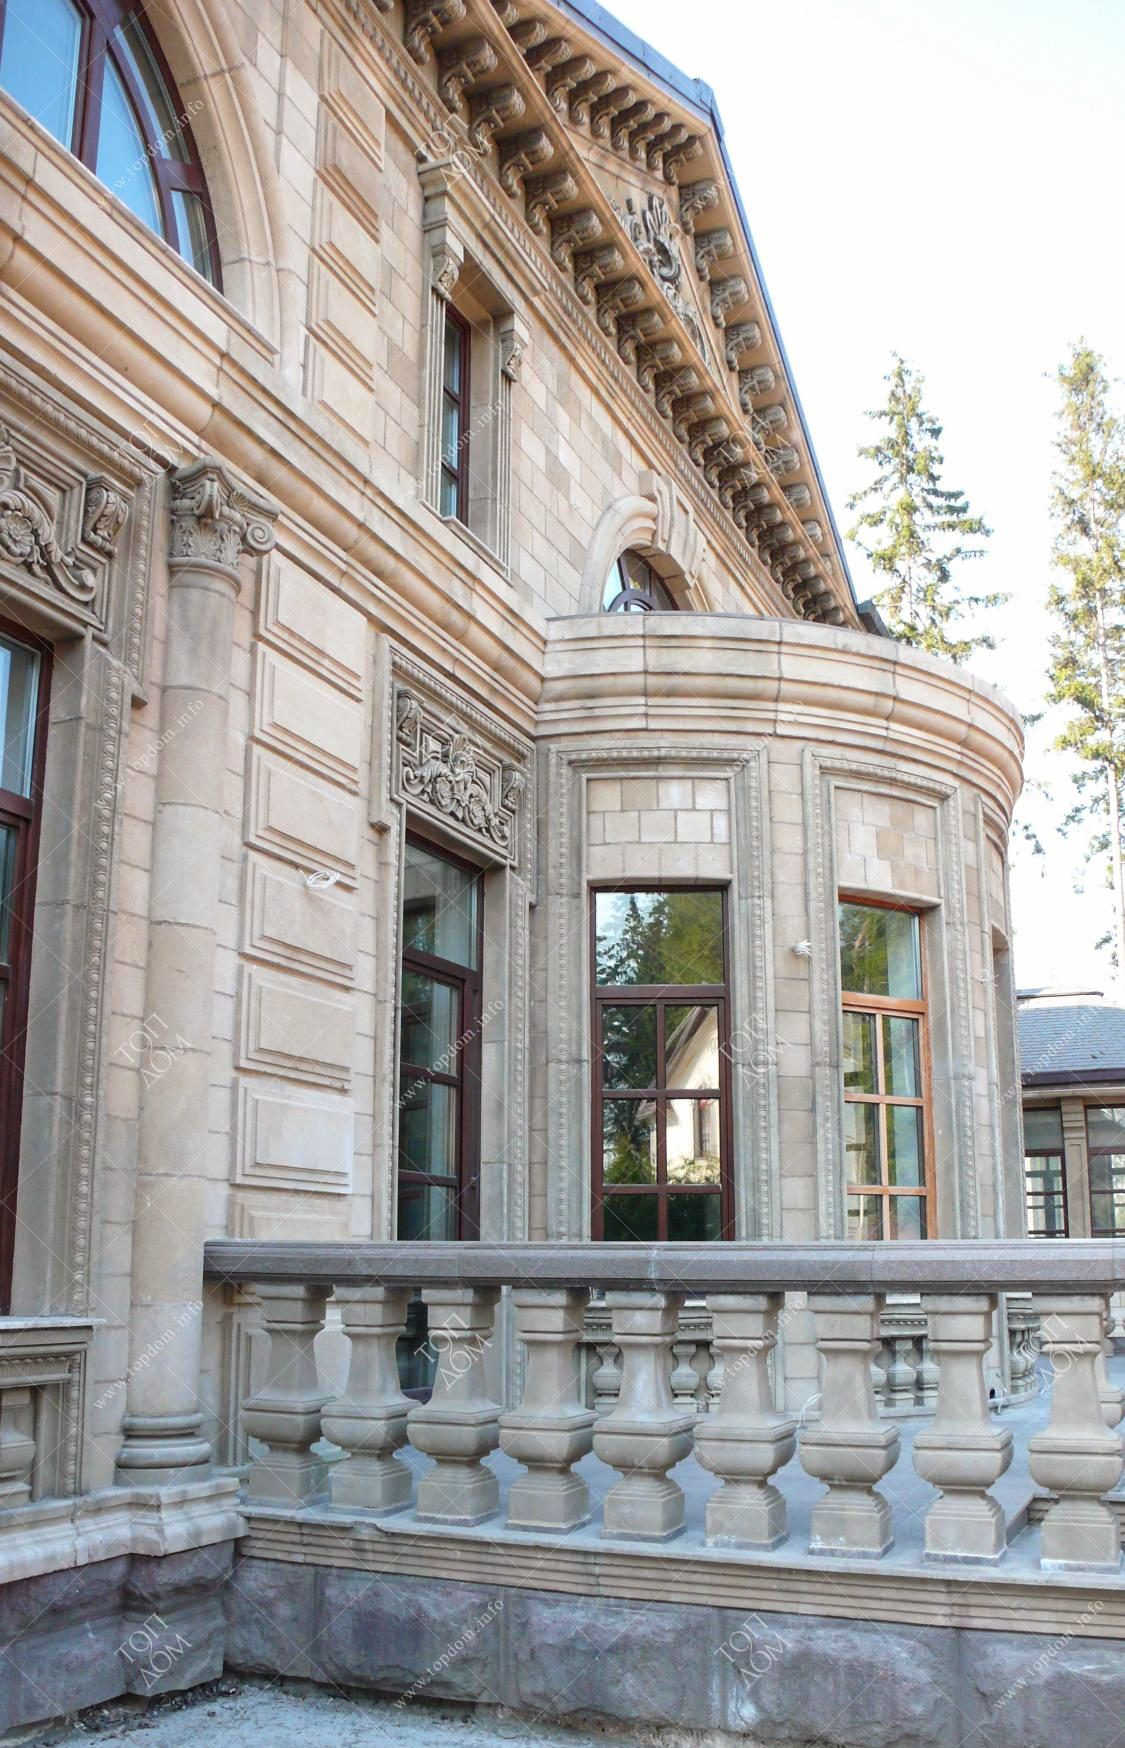 Schon Photo Of The Classic Mansion Facade. View From The Courtyard / Фотография  фасада классического особняка